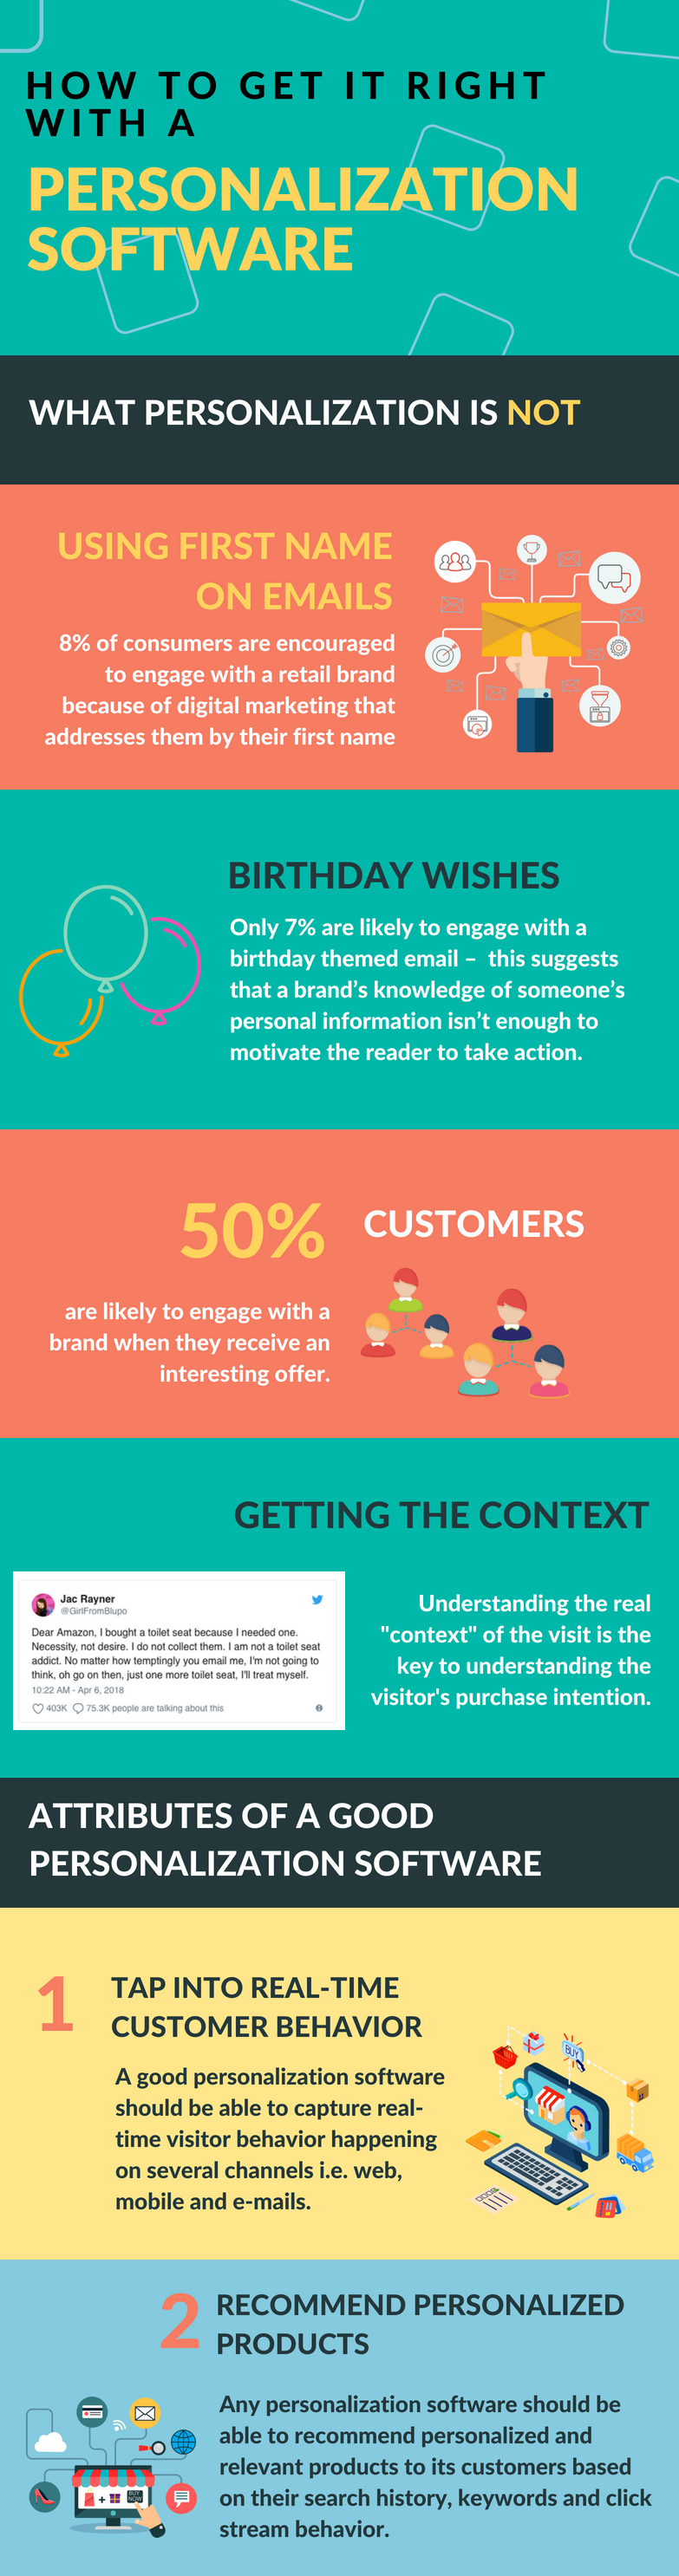 What a personalization software is and what it is not. Find out tips and tricks on how to make it right with an eCommerce personalization software. All on this infographic.